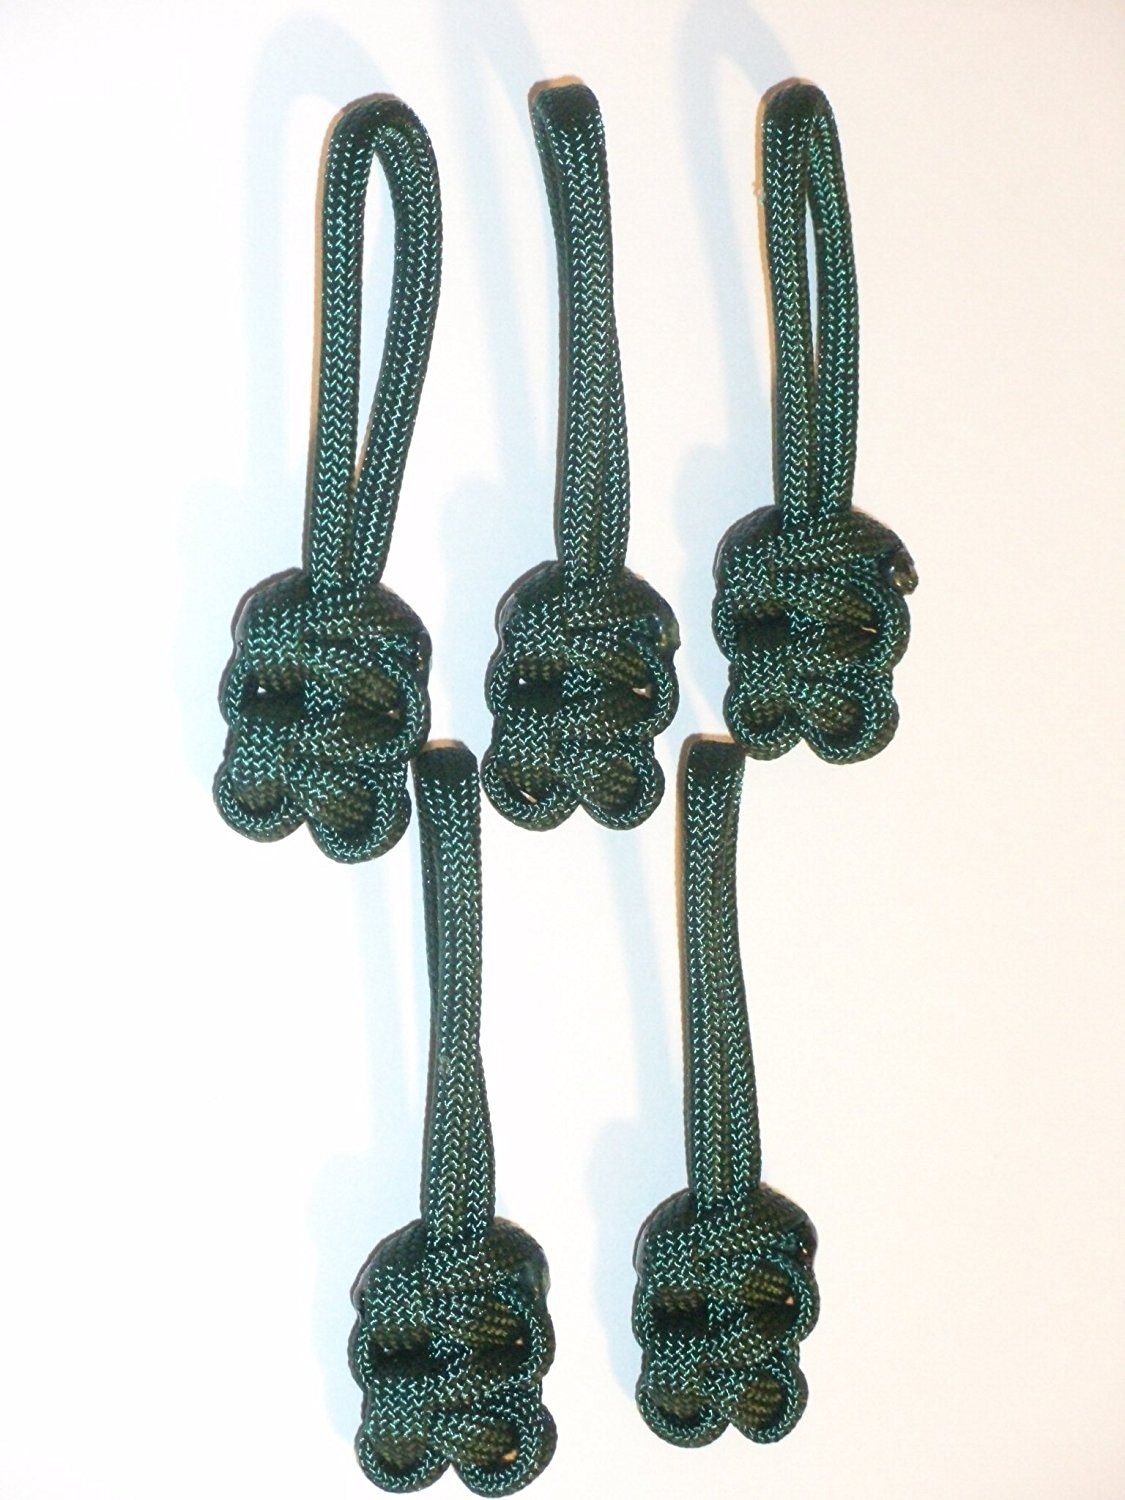 RedVex Paracord Zipper Pulls / Lanyards - Lot of 5 - ~2.5 - Dark Green